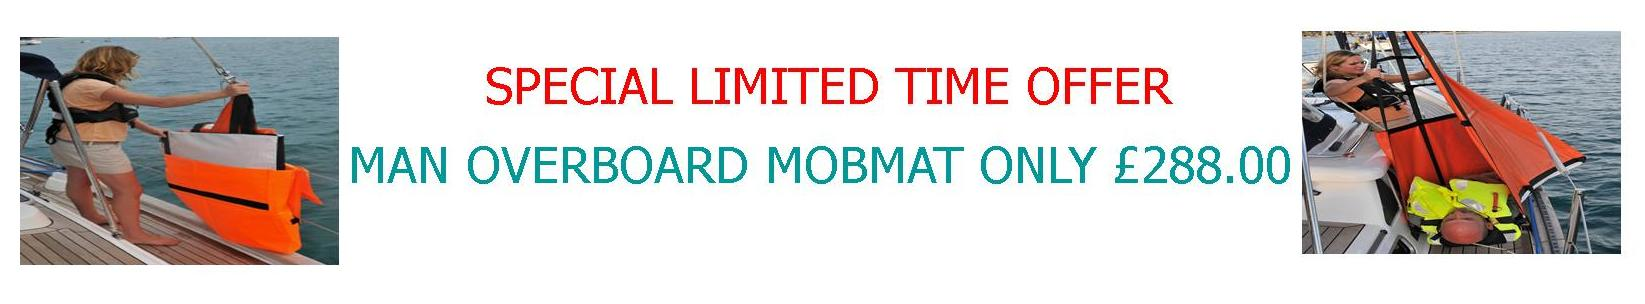 Mobmat Special Offer